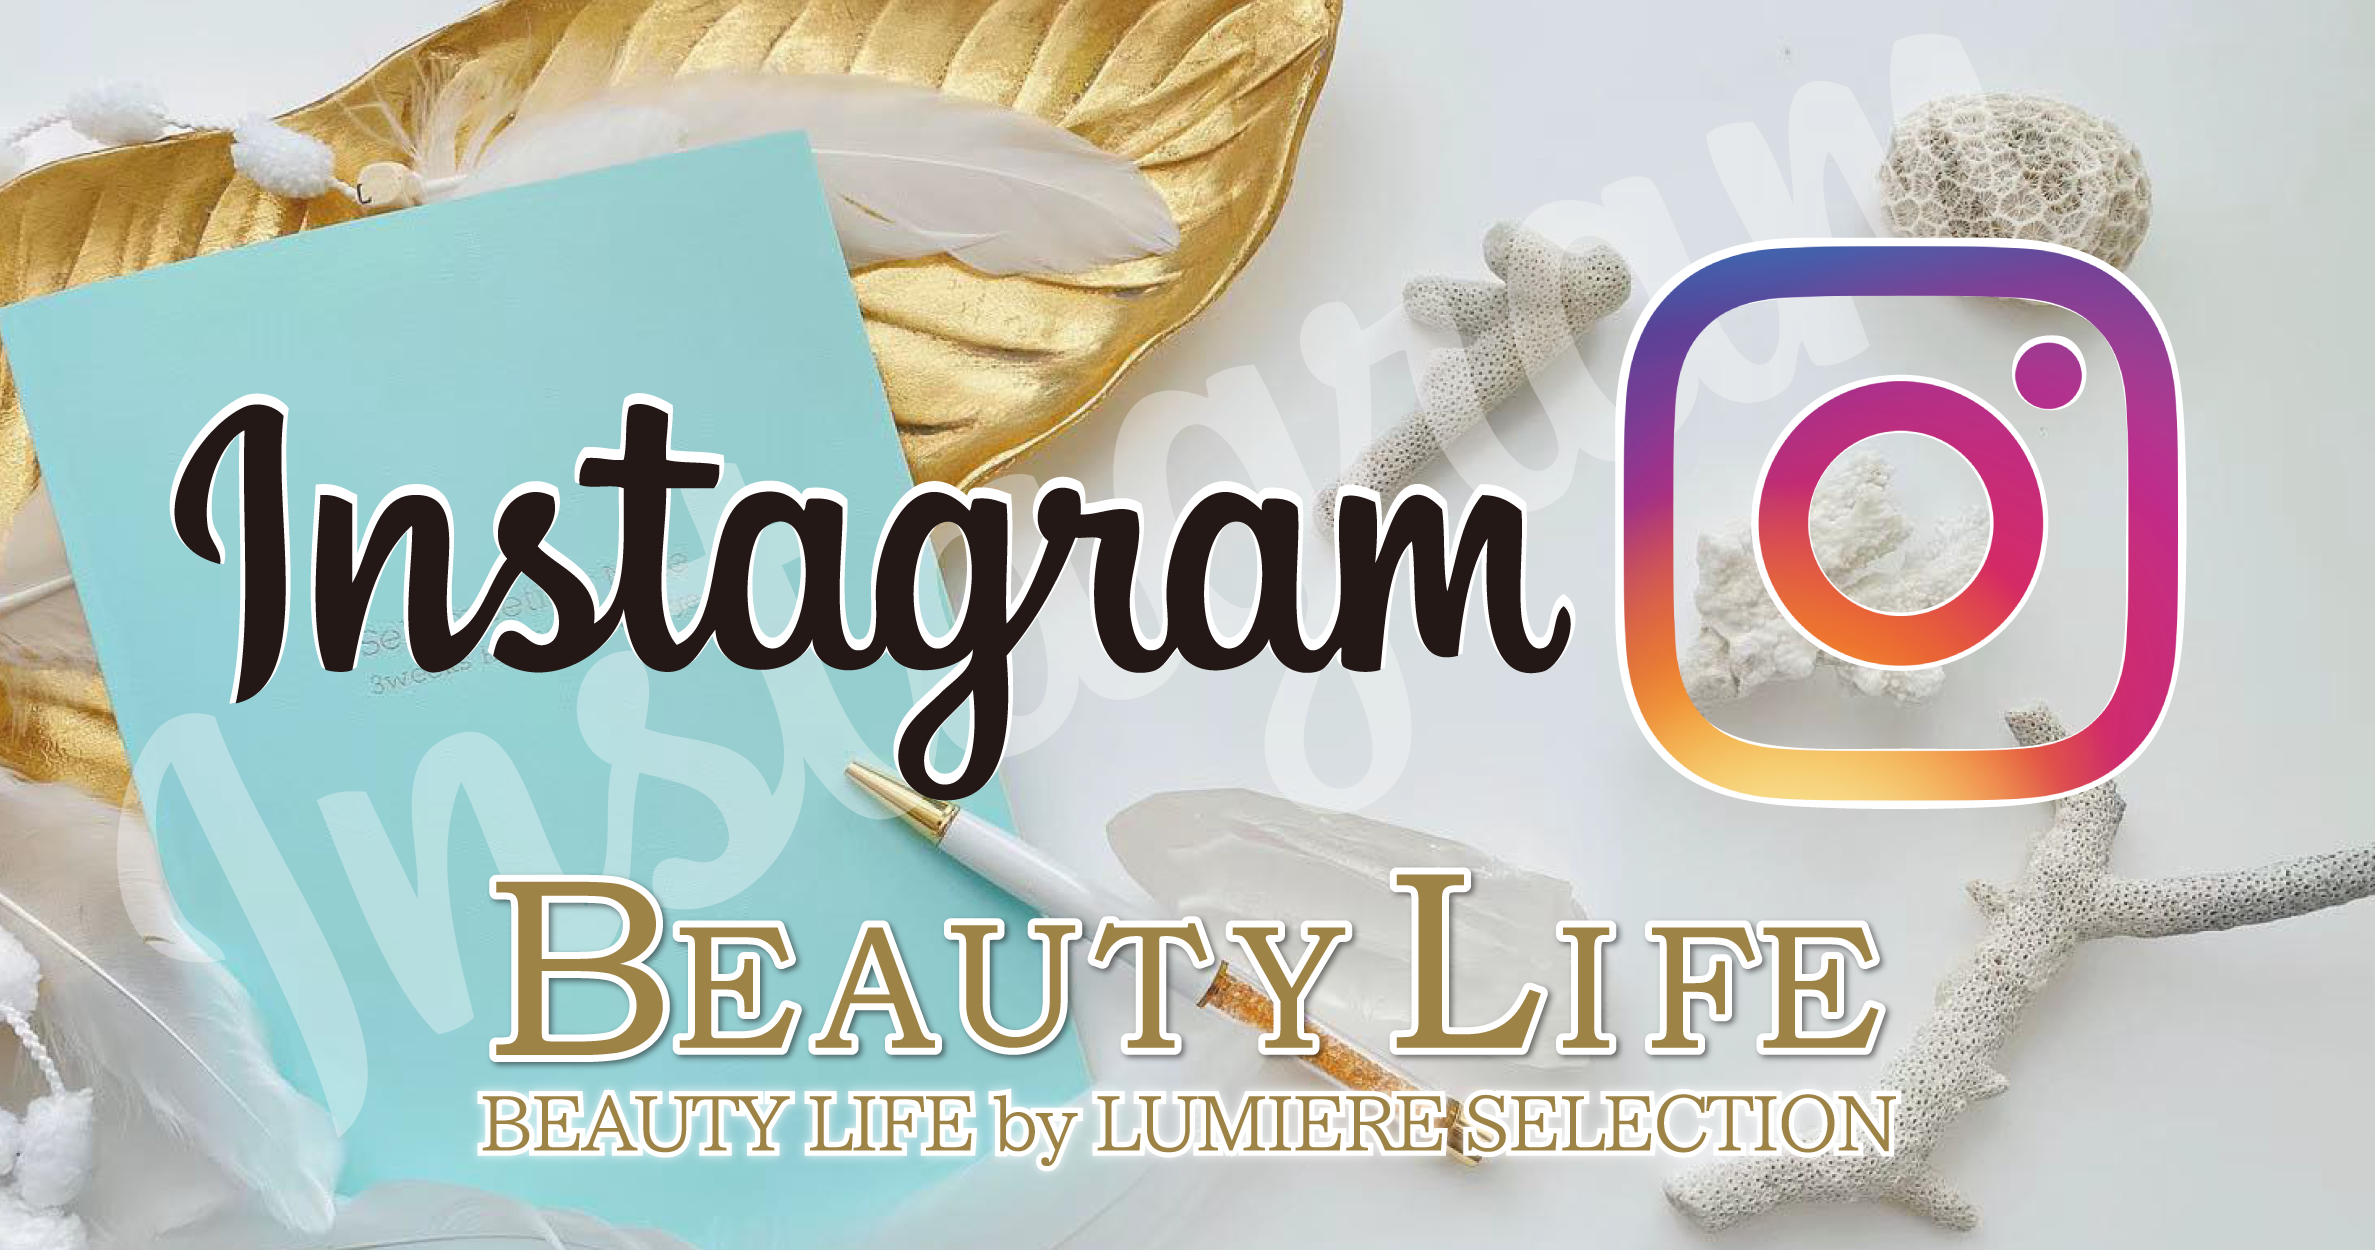 Beauty Life Instagram